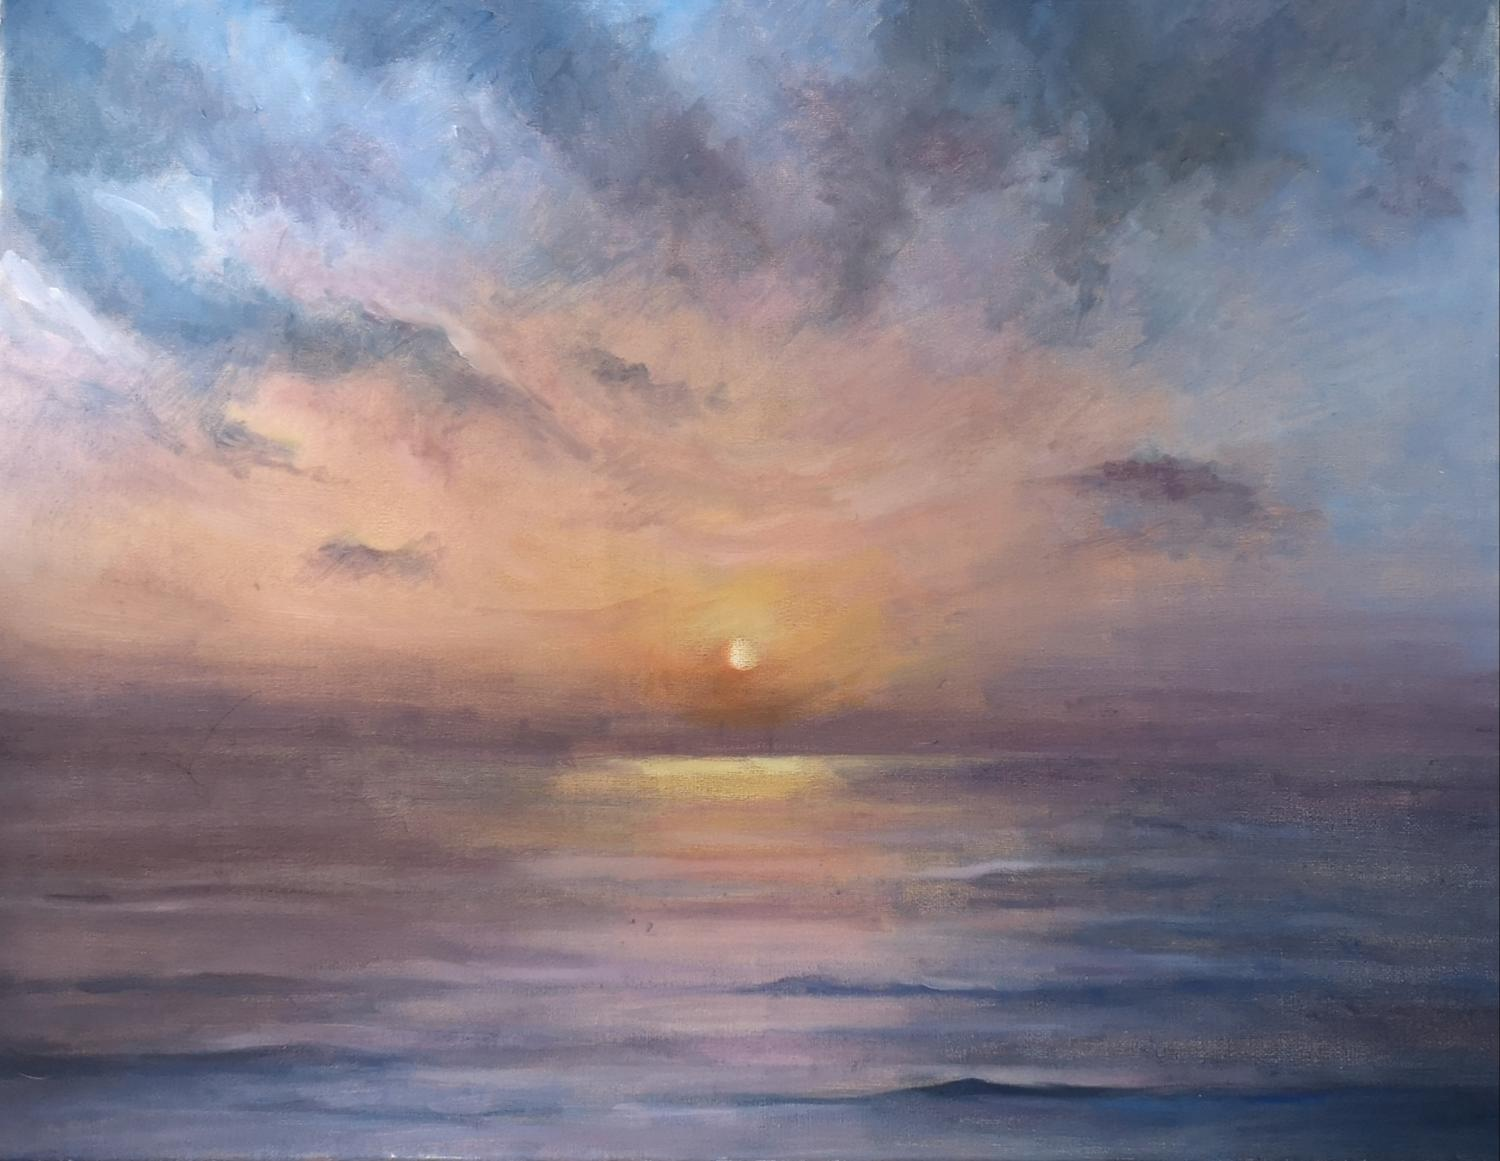 Skyros Sunrise, Oil on linen, 2018